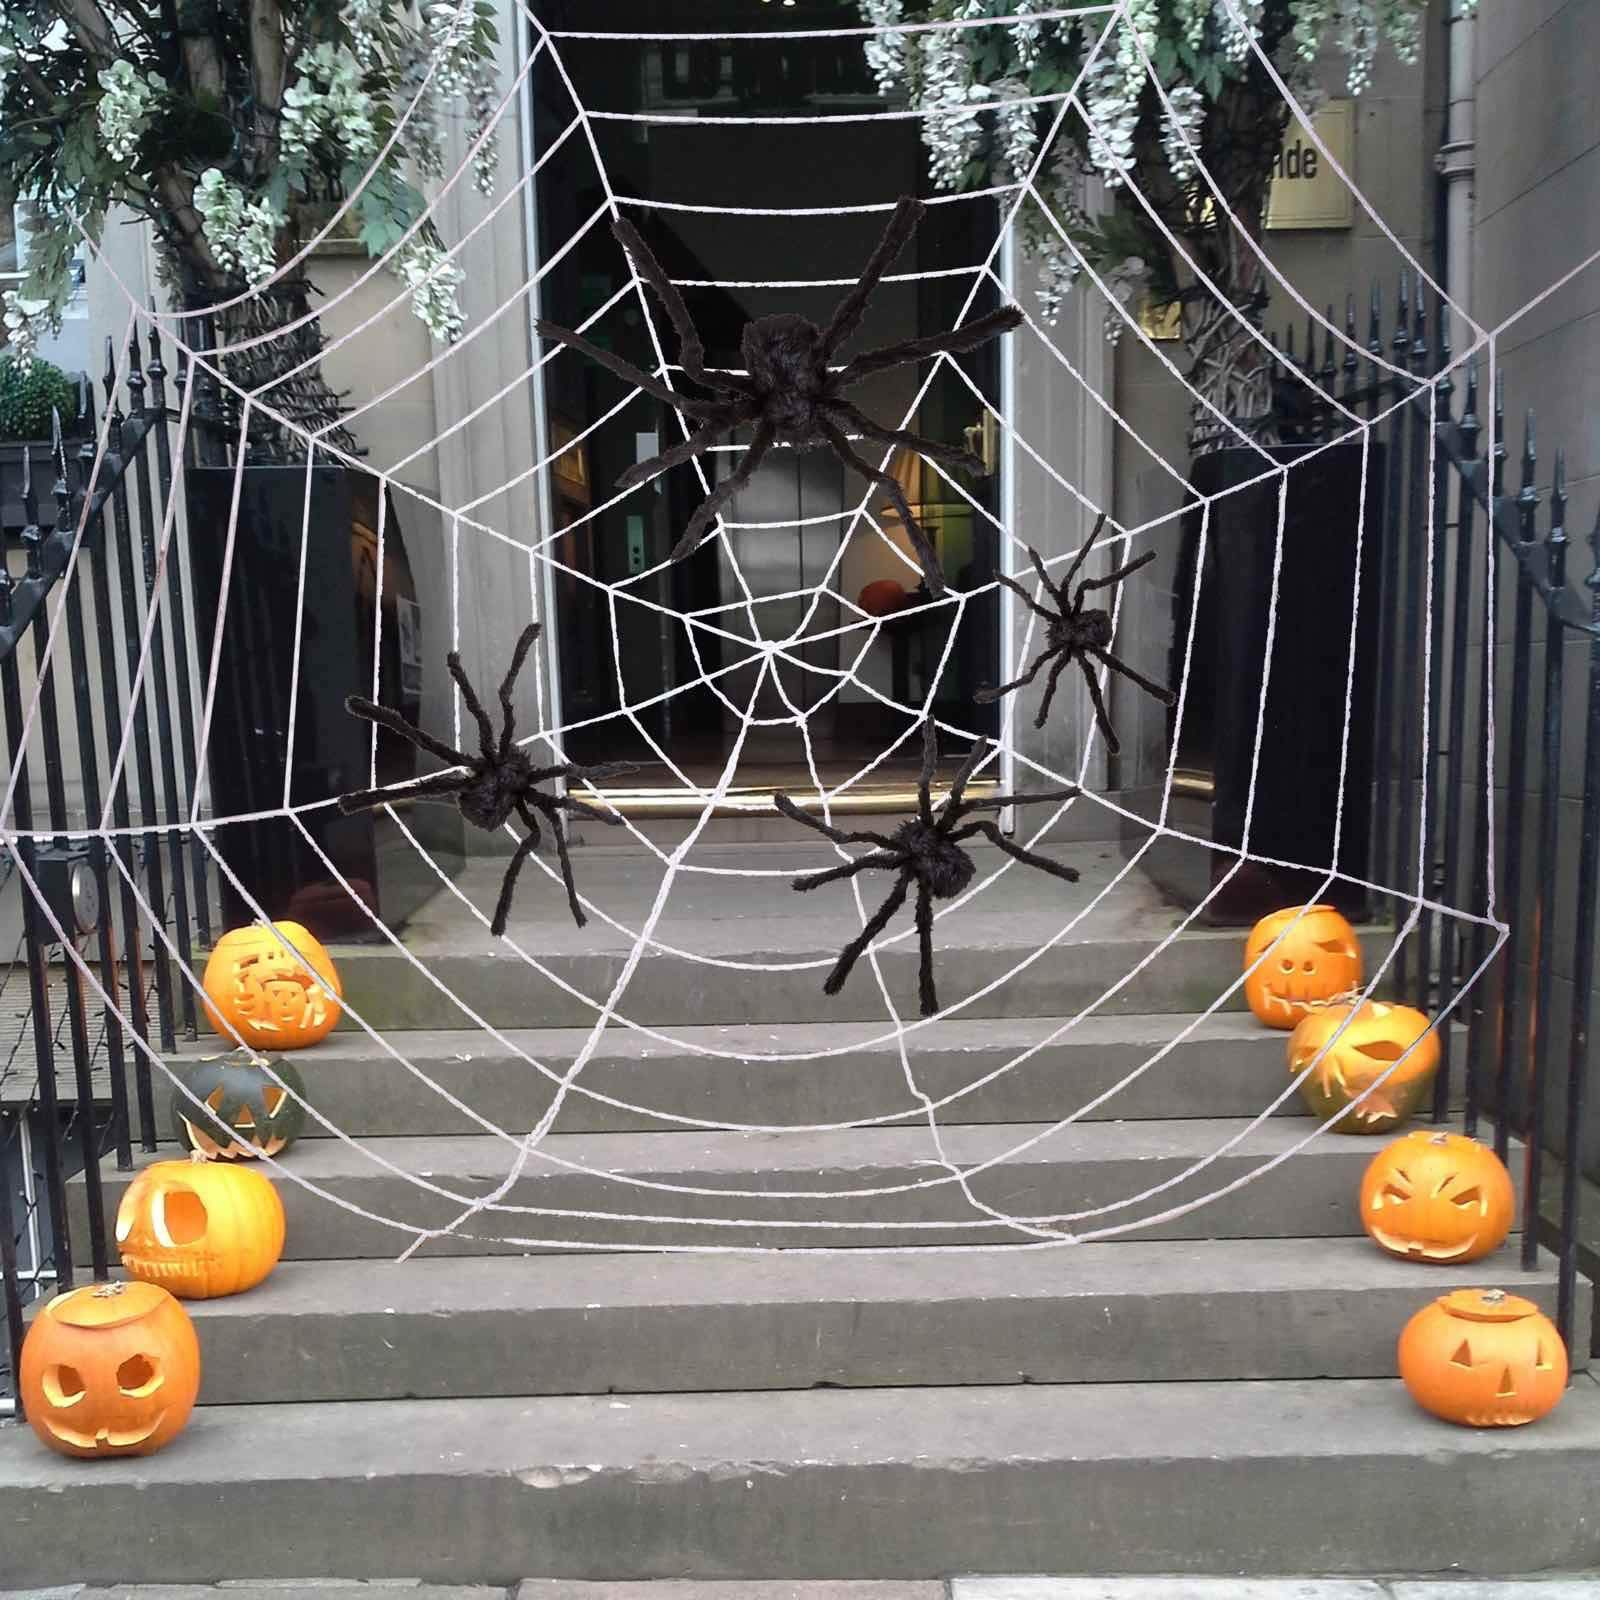 Four Halloween Realistic Hairy Spiders Set, Valuable Halloween Props, Halloween Spider Set for Indoor and Outside Decorations by JOYIN (Image #4)